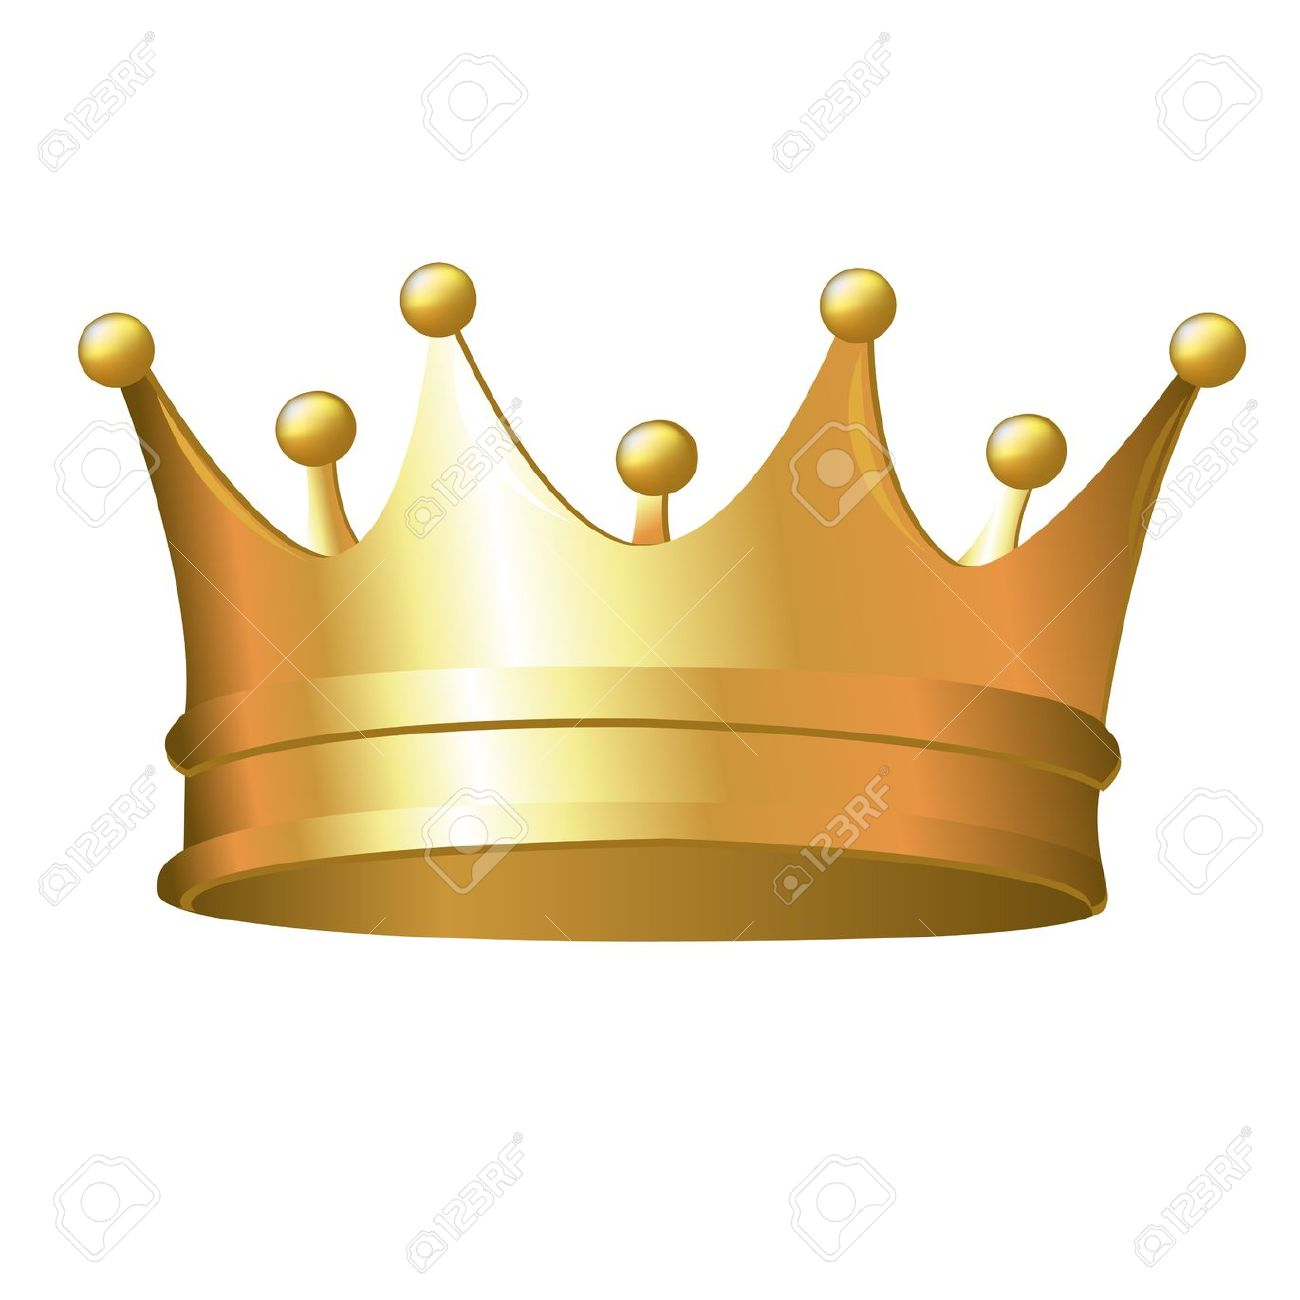 Gold king crown clip art svg royalty free download King crown clipart no background - ClipartFox svg royalty free download